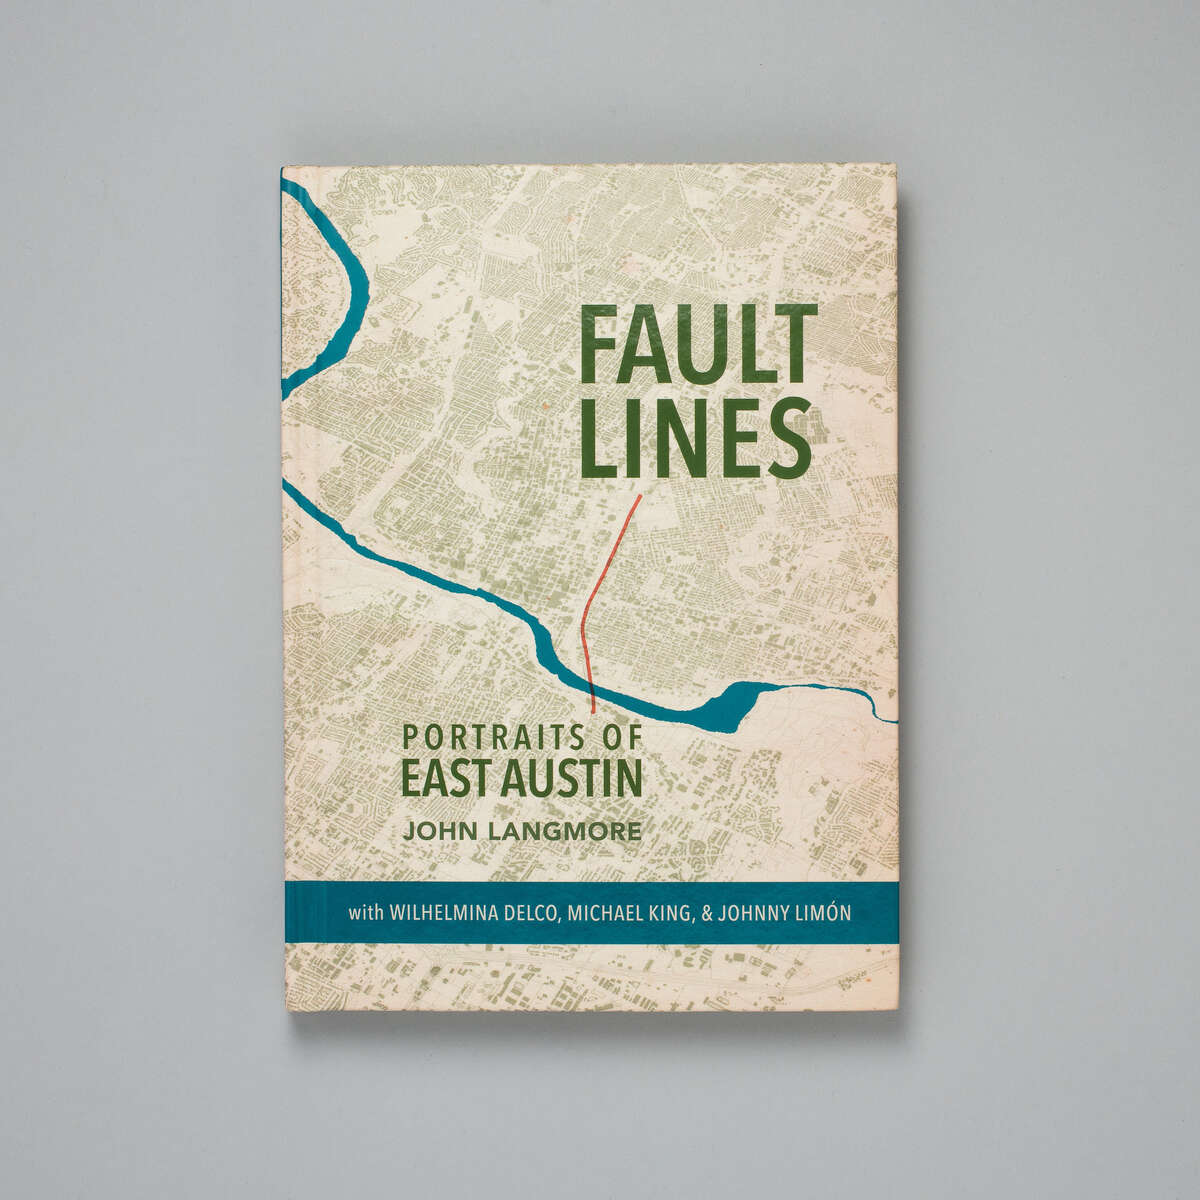 After years observing the fragmentation of East Austin's Latino and African American communities, photographer John Langmore began to chronicle the historic neighborhood and its residents. His aim was to capture the gentrifying neighborhood's unique nature and to make Texans aware of the people and places negatively affected by the state's growth.Fault Lines features more than a hundred color and black-and-white photographs taken between 2006 and 2011, during which time Langmore was fully aware that the window for capturing the community was rapidly closing. Indeed today many of the neighborhood places, and even the people, have been lost to development and increasing rents and property taxes.The book also has a foreword by Michael King, a longtime political reporter for the Austin Chronicle; essays by East Austin resident Wilhelmina Delco, Austin's first African American elected official and a ten-term member of the Texas House of Representatives, and Johnny Limón, a sixty-six-year resident of East Austin and a prominent member of the neighborhood's Latino community; and an epilogue by Langmore.Fault Lines by Trinity University Press now available.